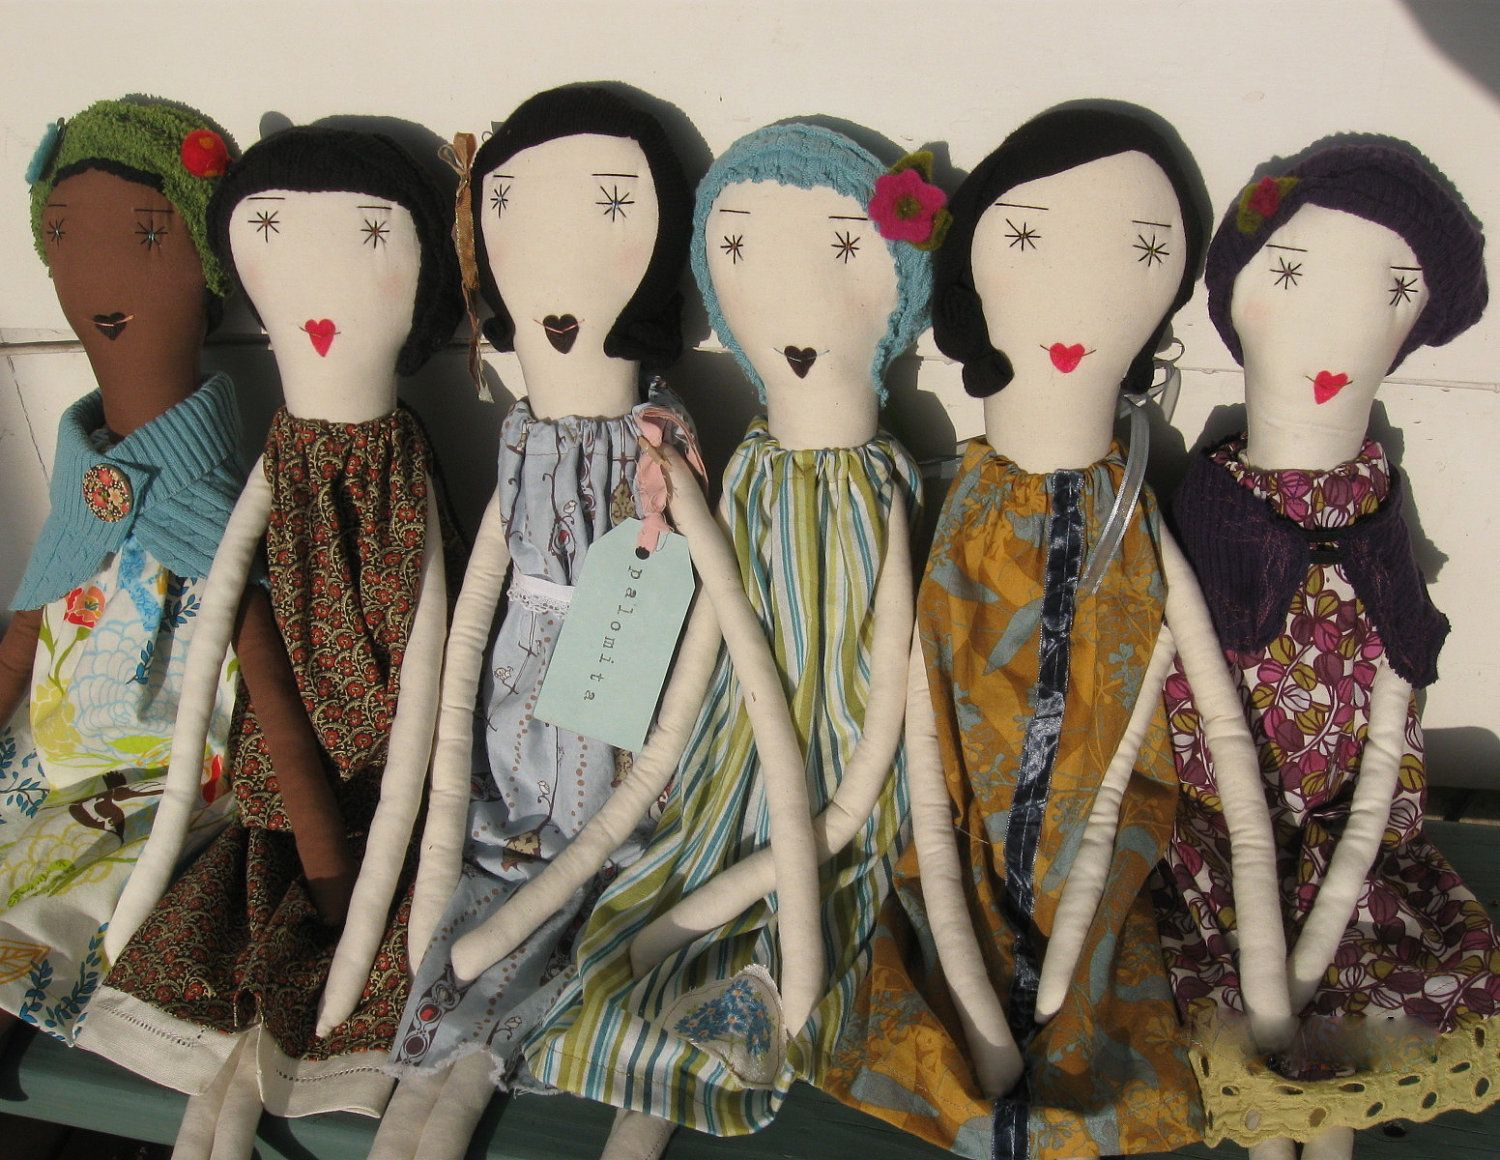 Handcrafted Rag Dolls - 22 Inches - Recycled and Vintage Textiles - One of a Kind - Custom & Wholesale Welcome. $120.00, via Etsy.